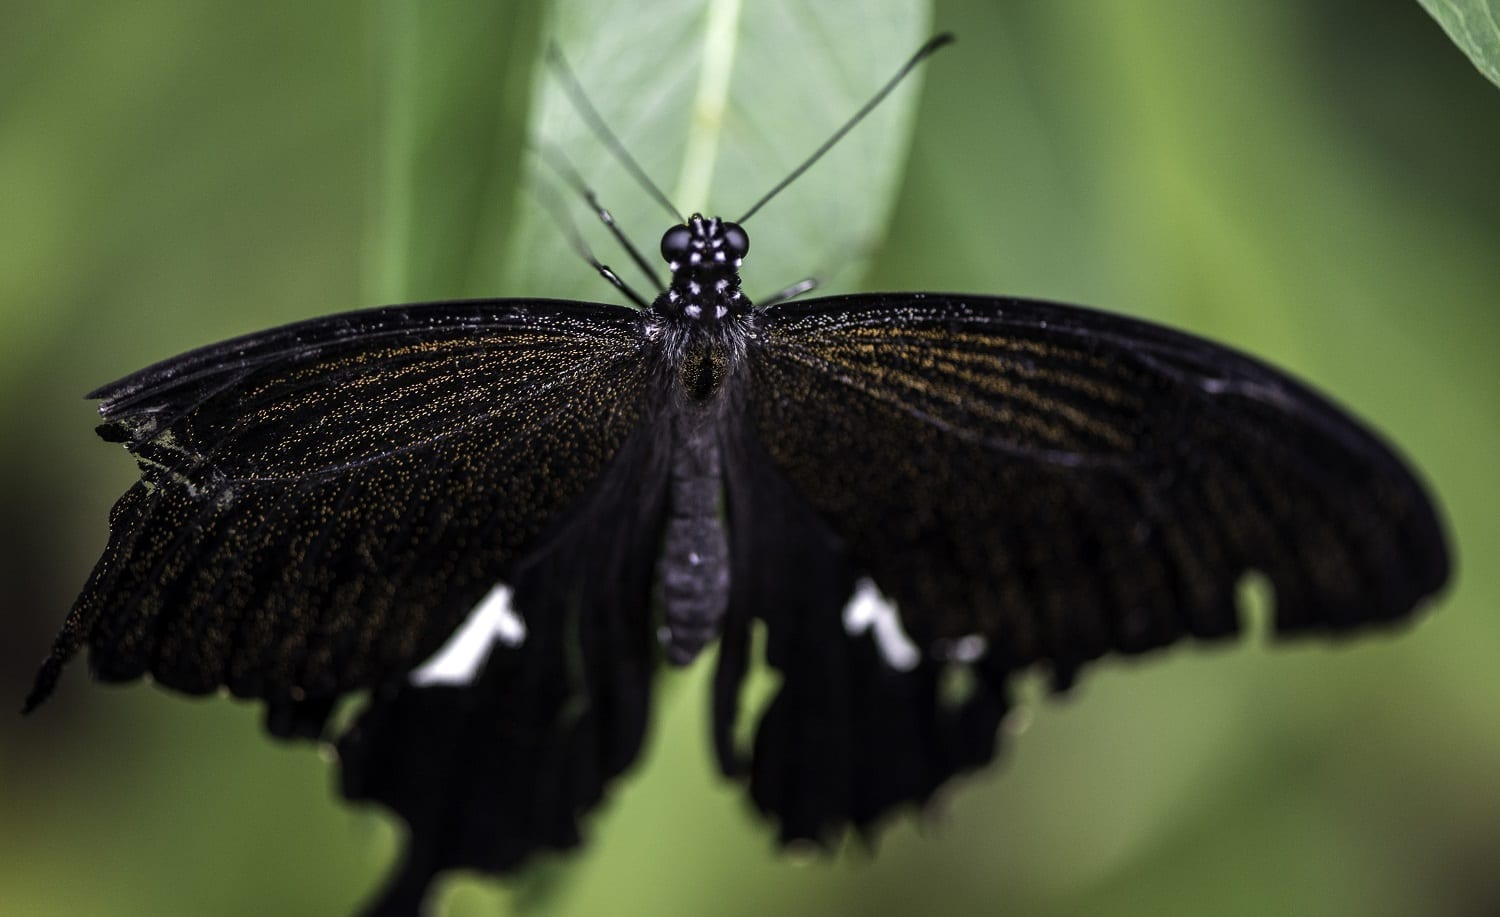 Black butterfly on a leaf, photo credit: Good Free Photos